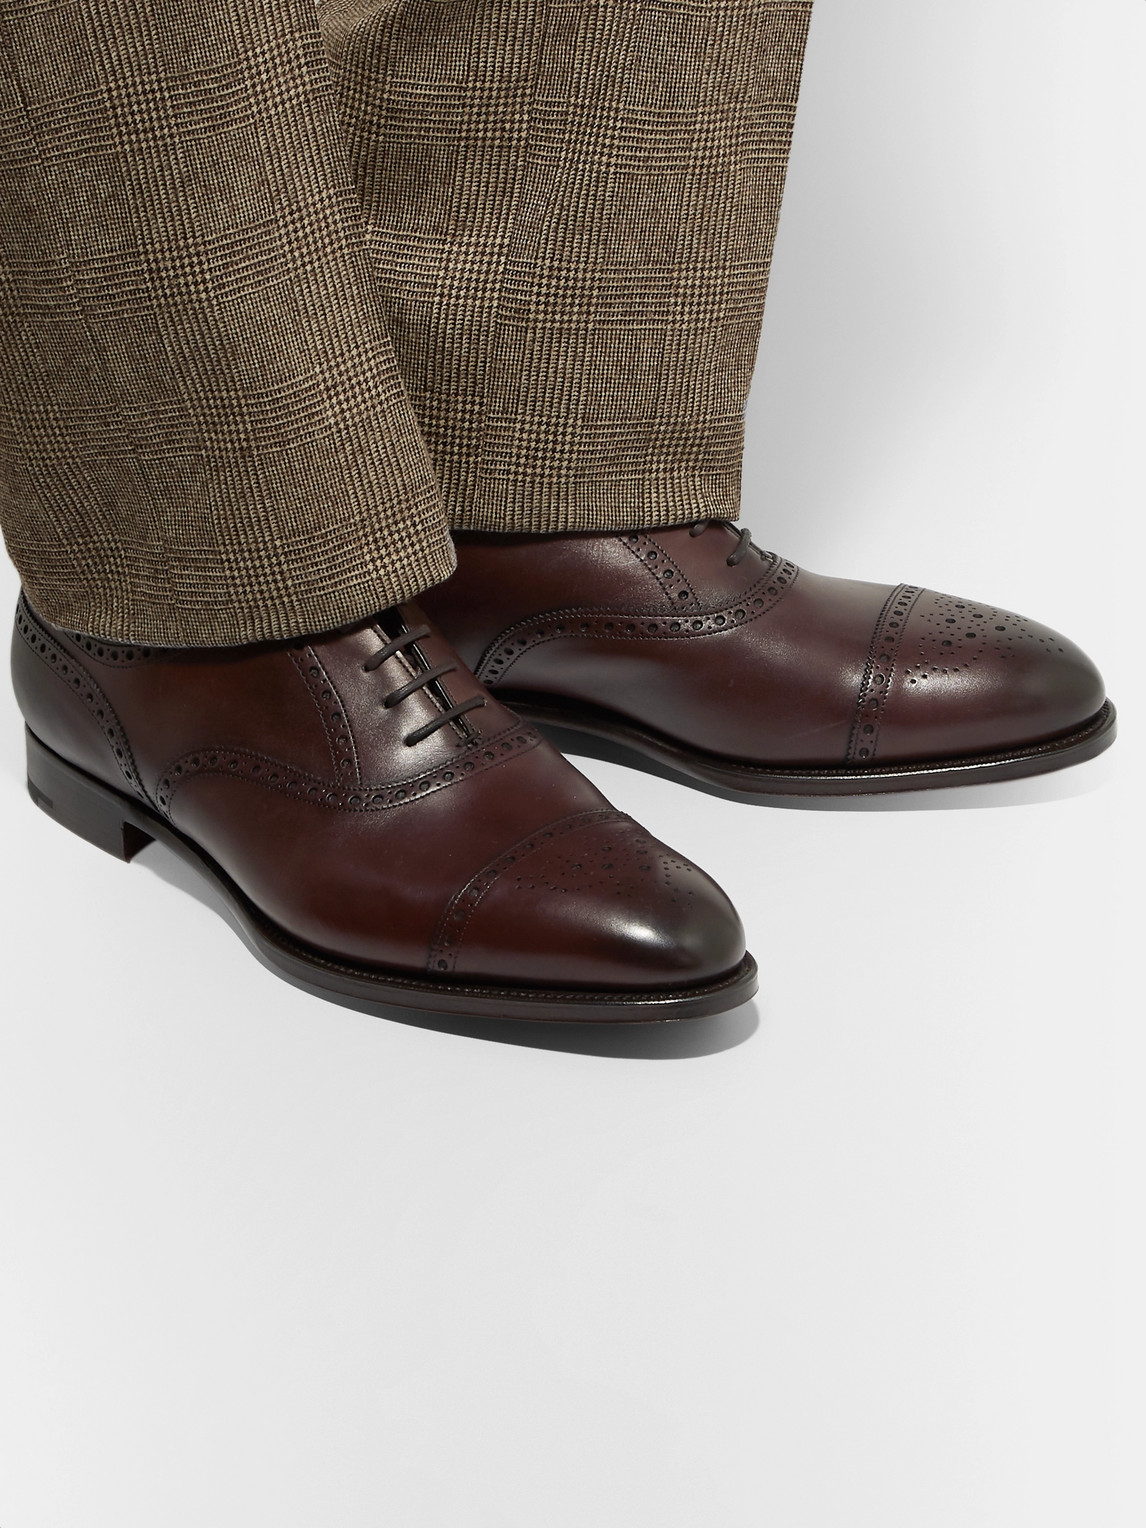 Edward Green Shoes CADOGAN BURNISHED-LEATHER BROGUES